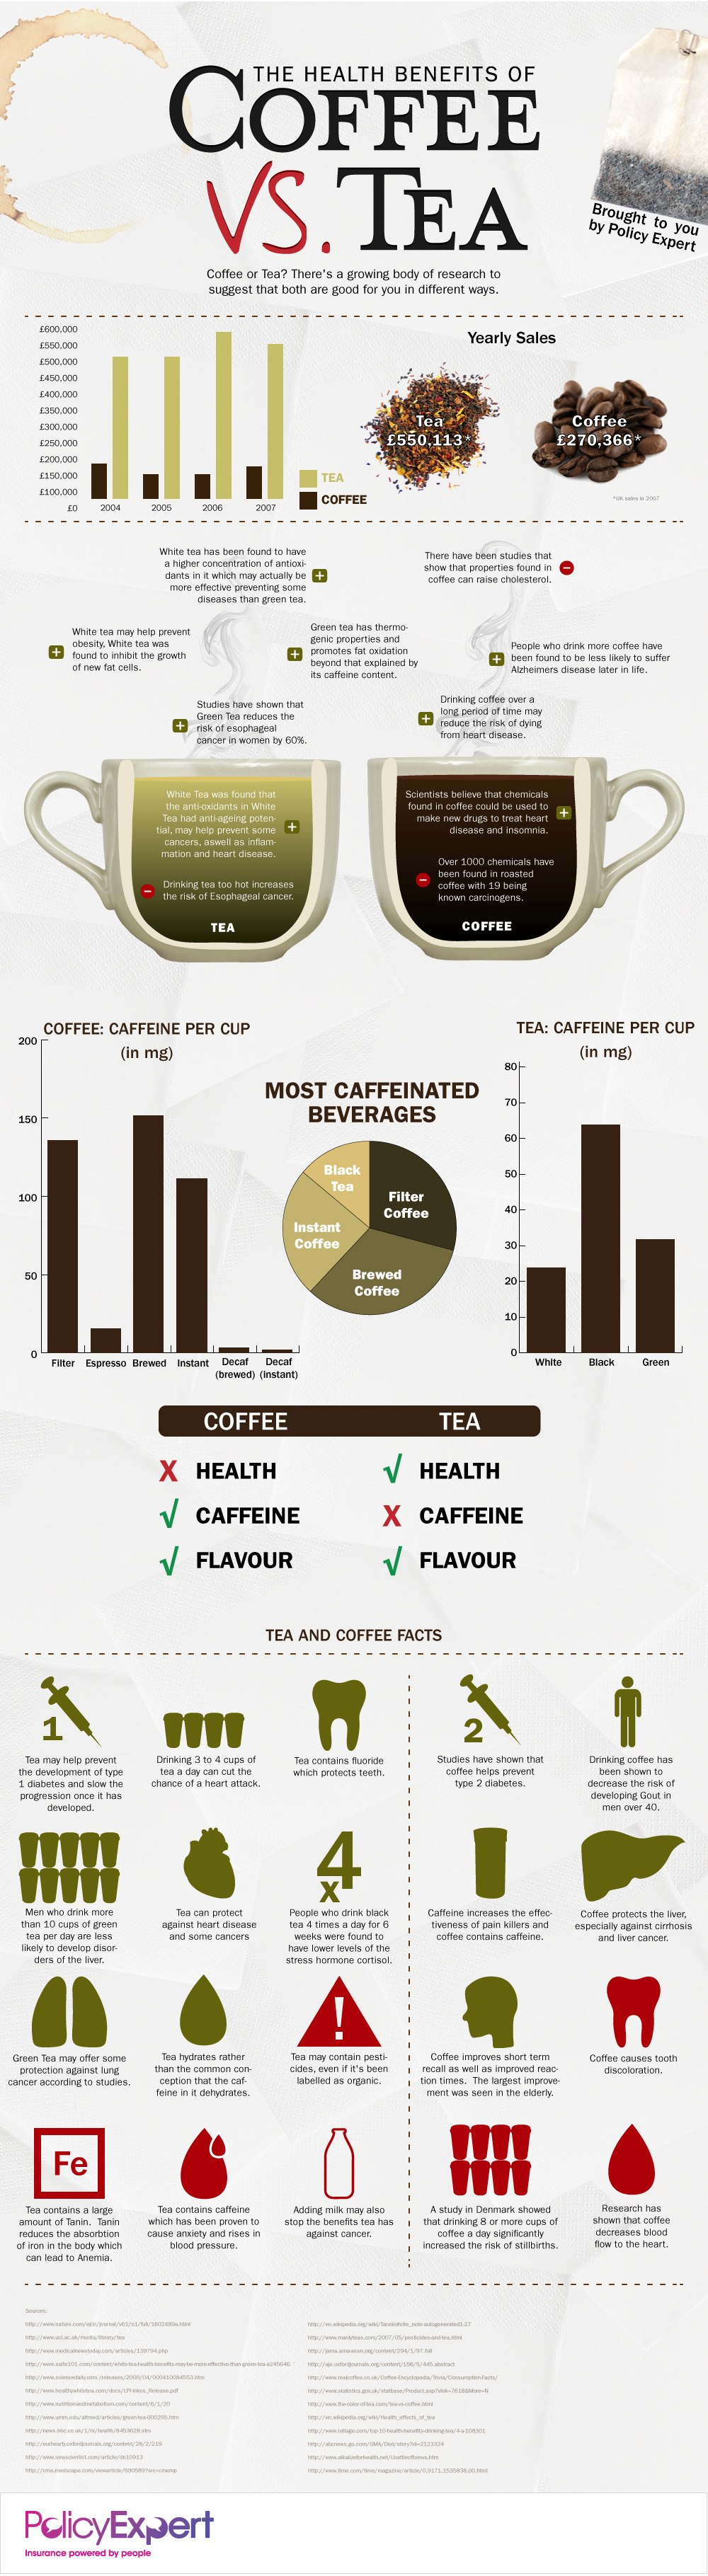 9. Tea Vs Coffee